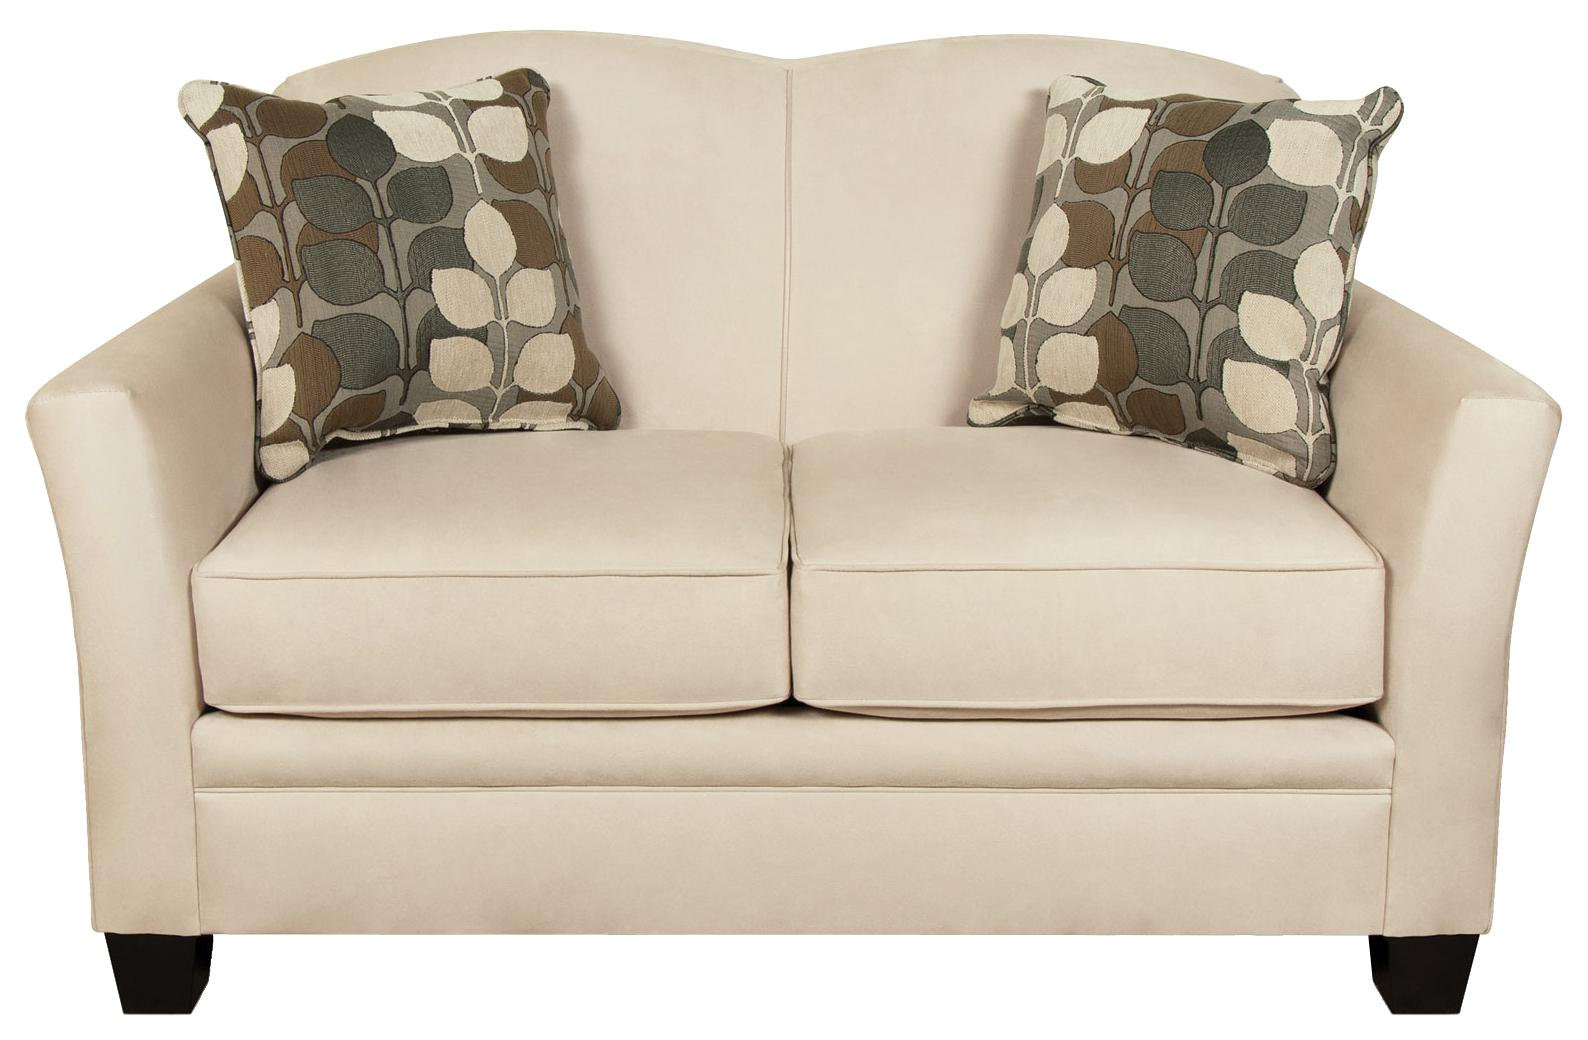 England Hilleary Loveseat - Item Number: 5036